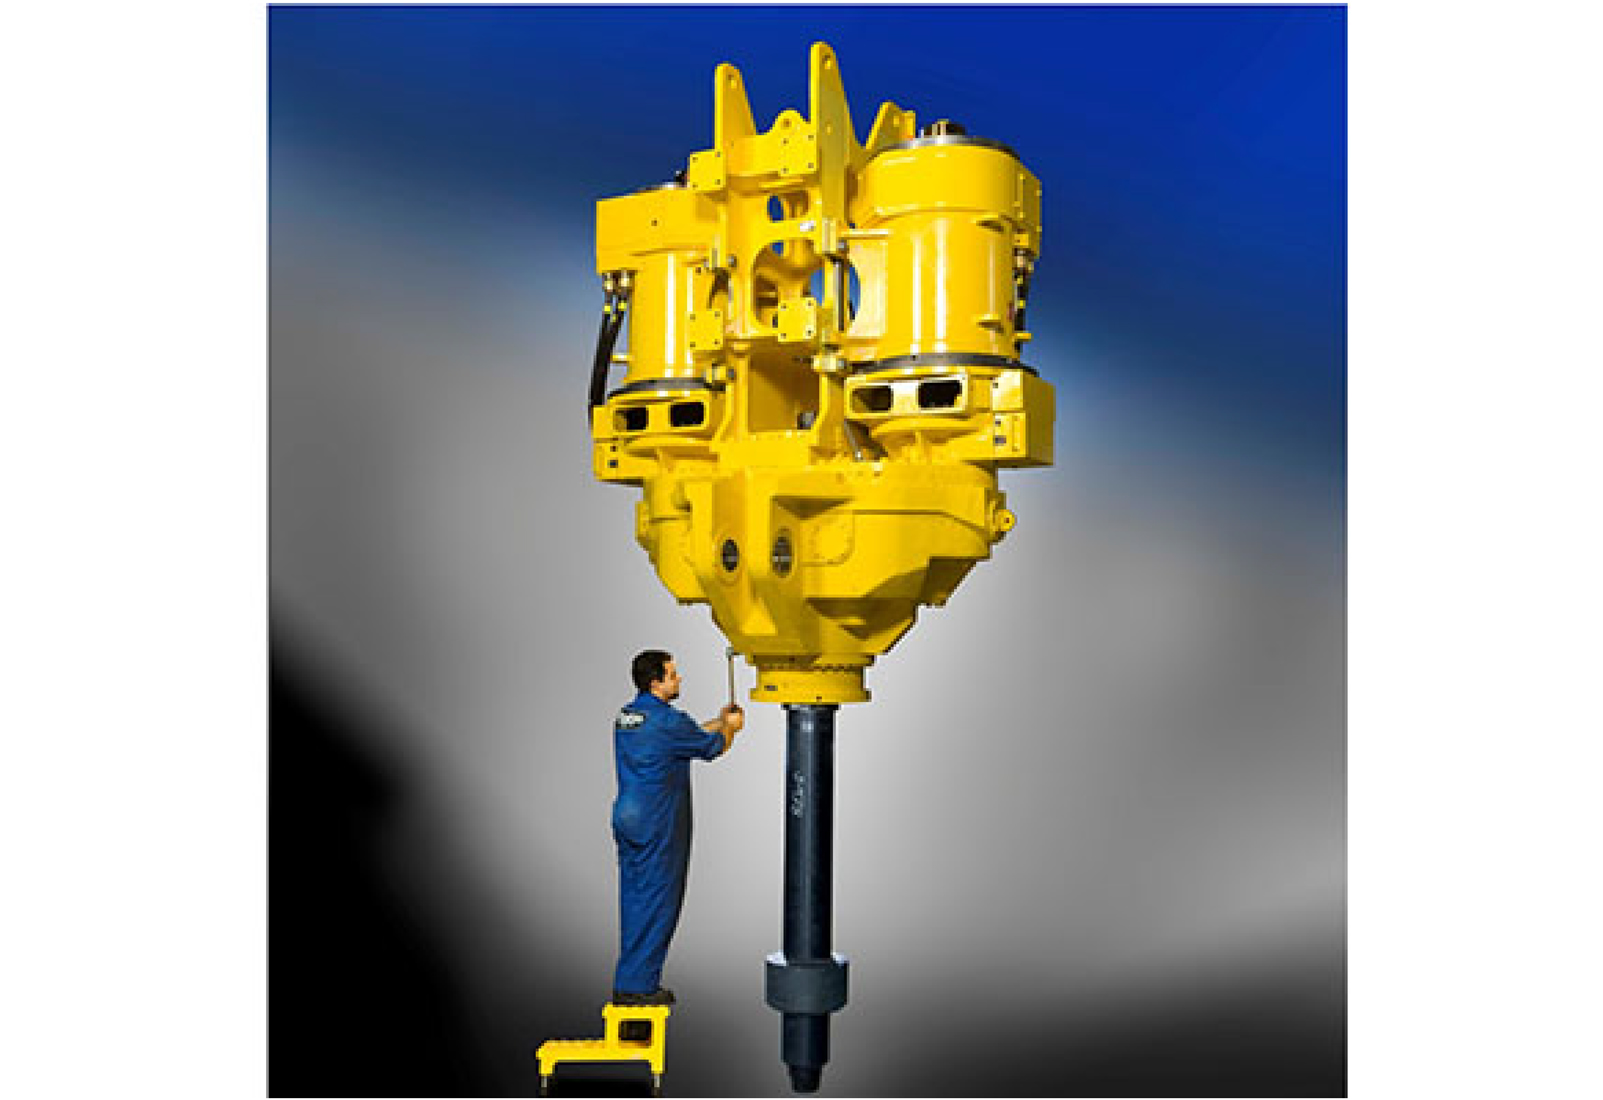 Complete 1,000 short ton top drive assembly that was analyzed by Predictive Engineering